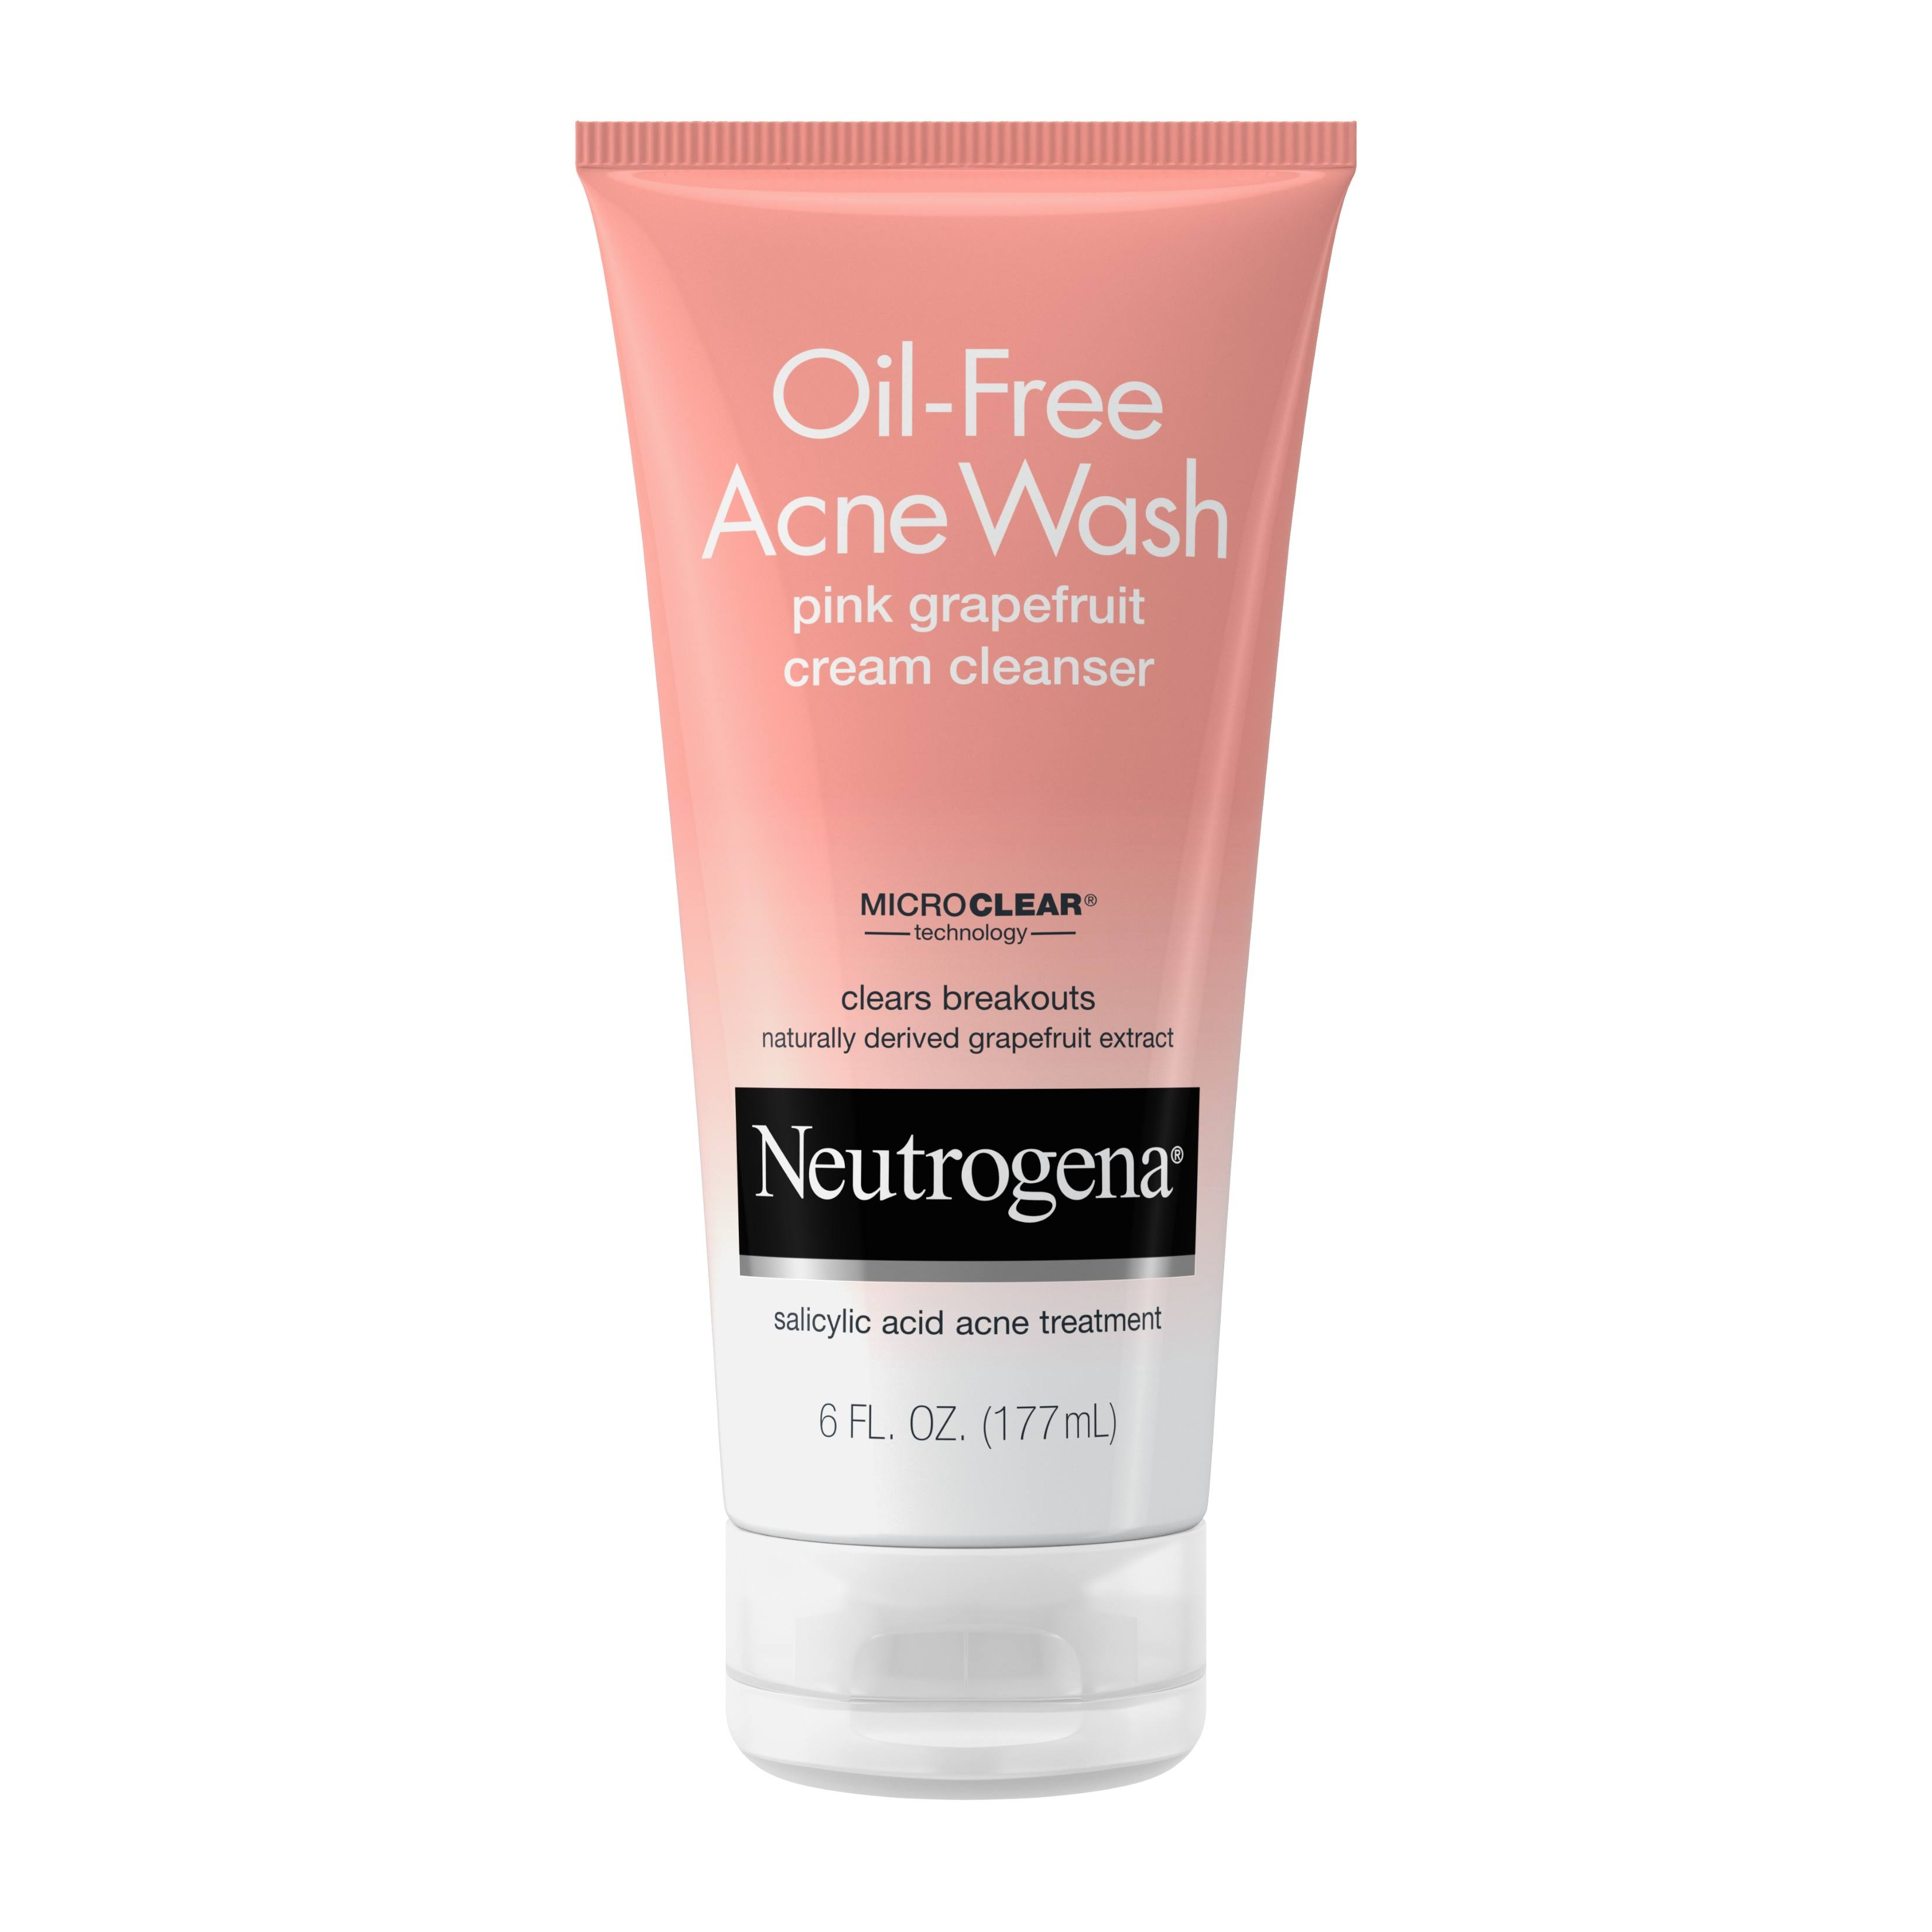 Neutrogena Oil Free Acne Wash Cream Cleanser - Pink Grapefruit, 6oz